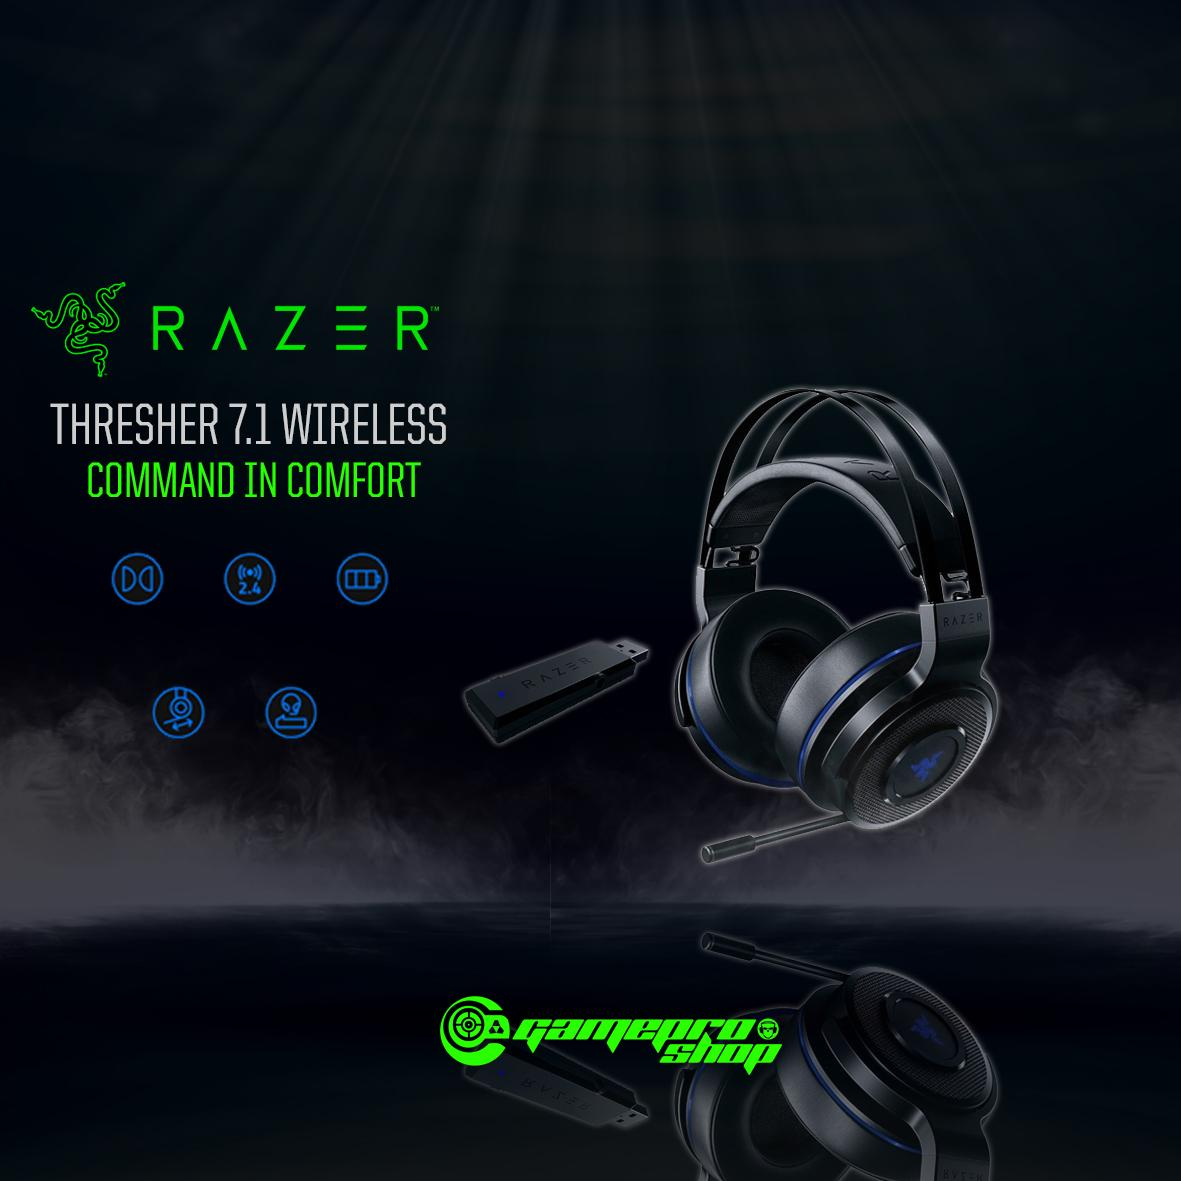 Razer Thresher 7.1 - Playstation 4 (PS4) Wireless Gaming Headset  *NDP PROMO*